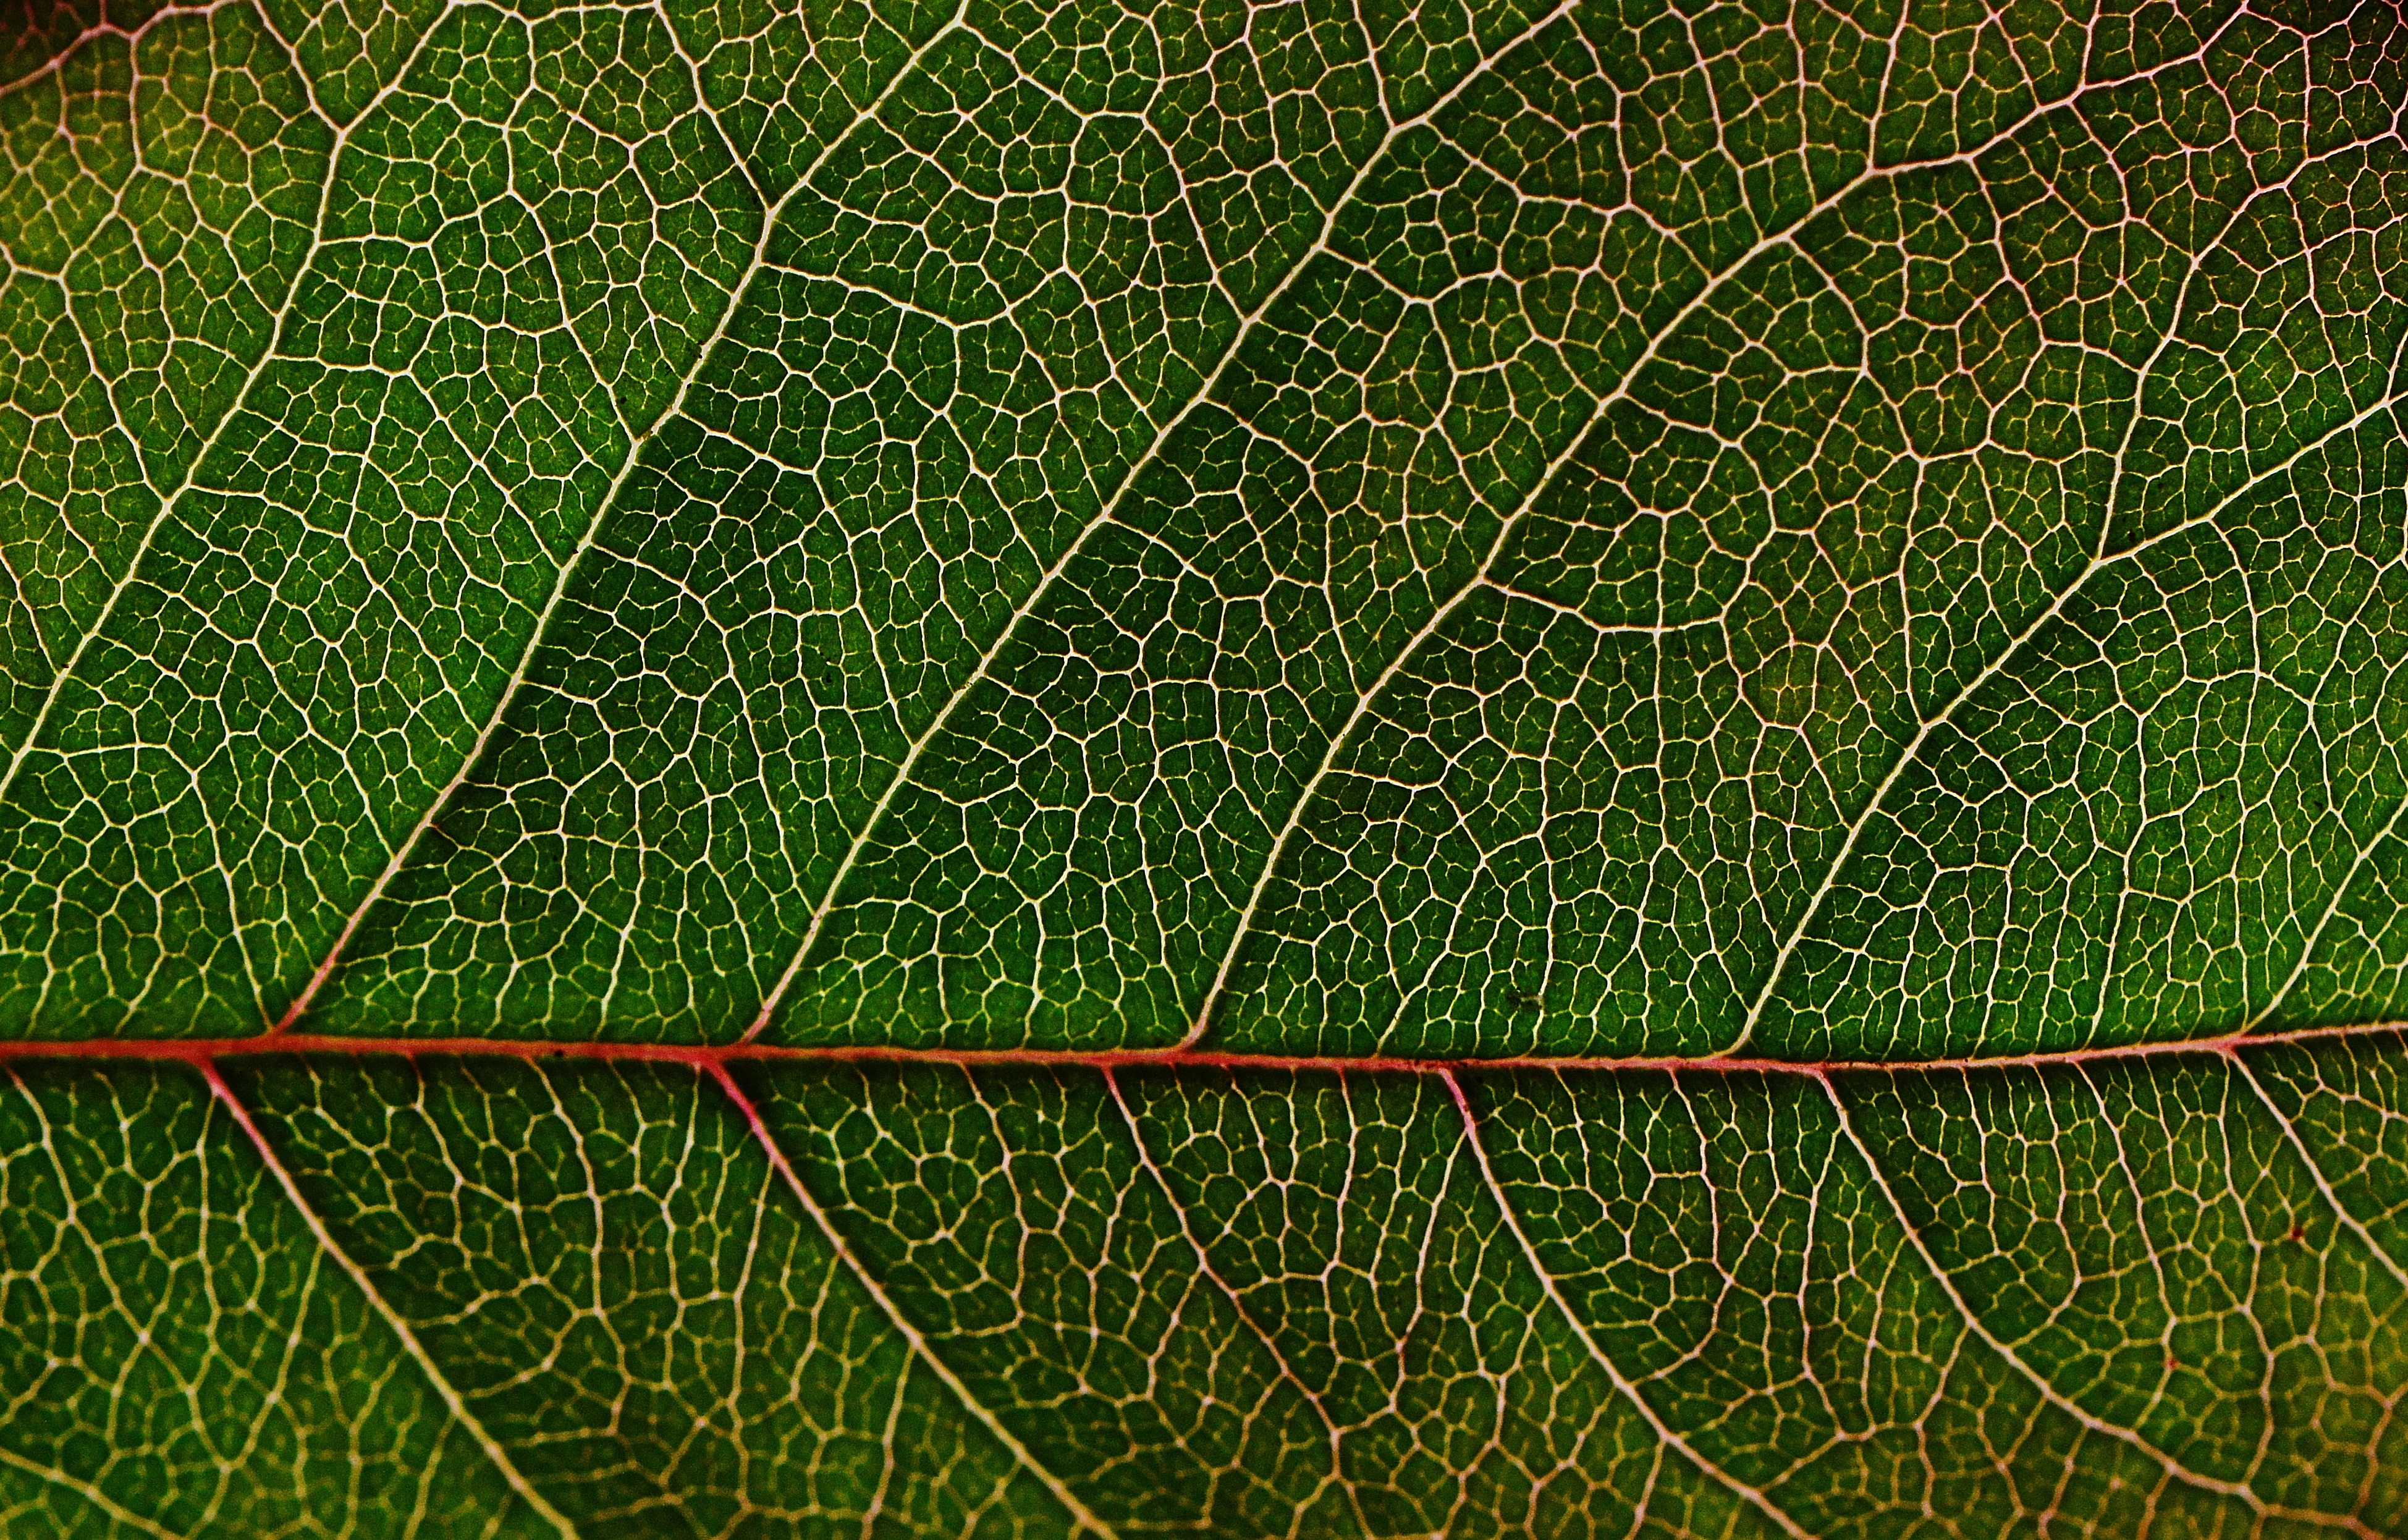 4k Hd Wallpapers For Iphone 1000 Great Leaf Texture Photos 183 Pexels 183 Free Stock Photos